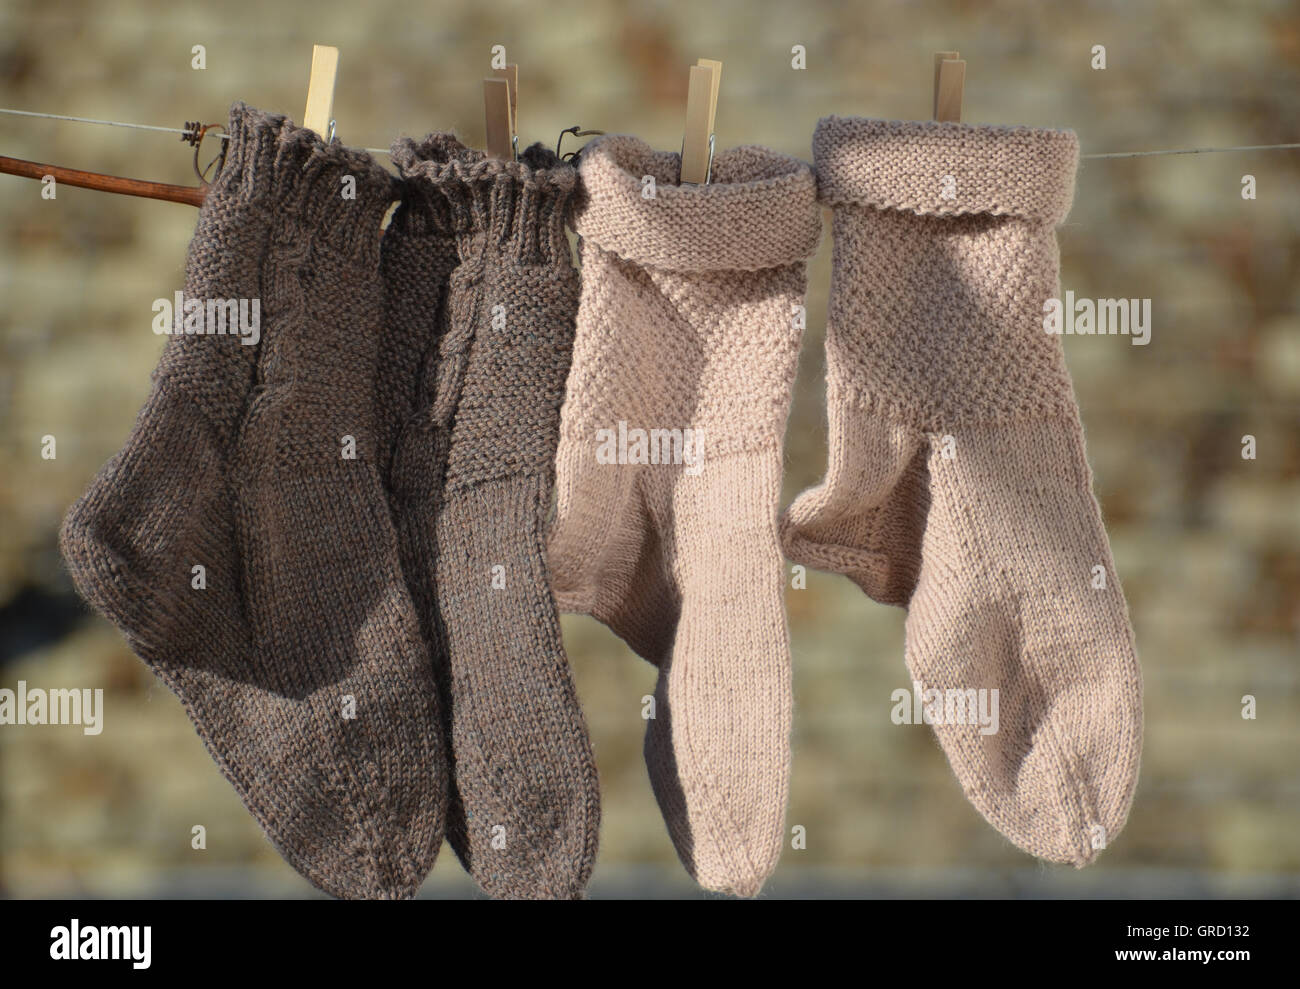 Even Knitted Wool Socks On The Clothesline Stock Photo